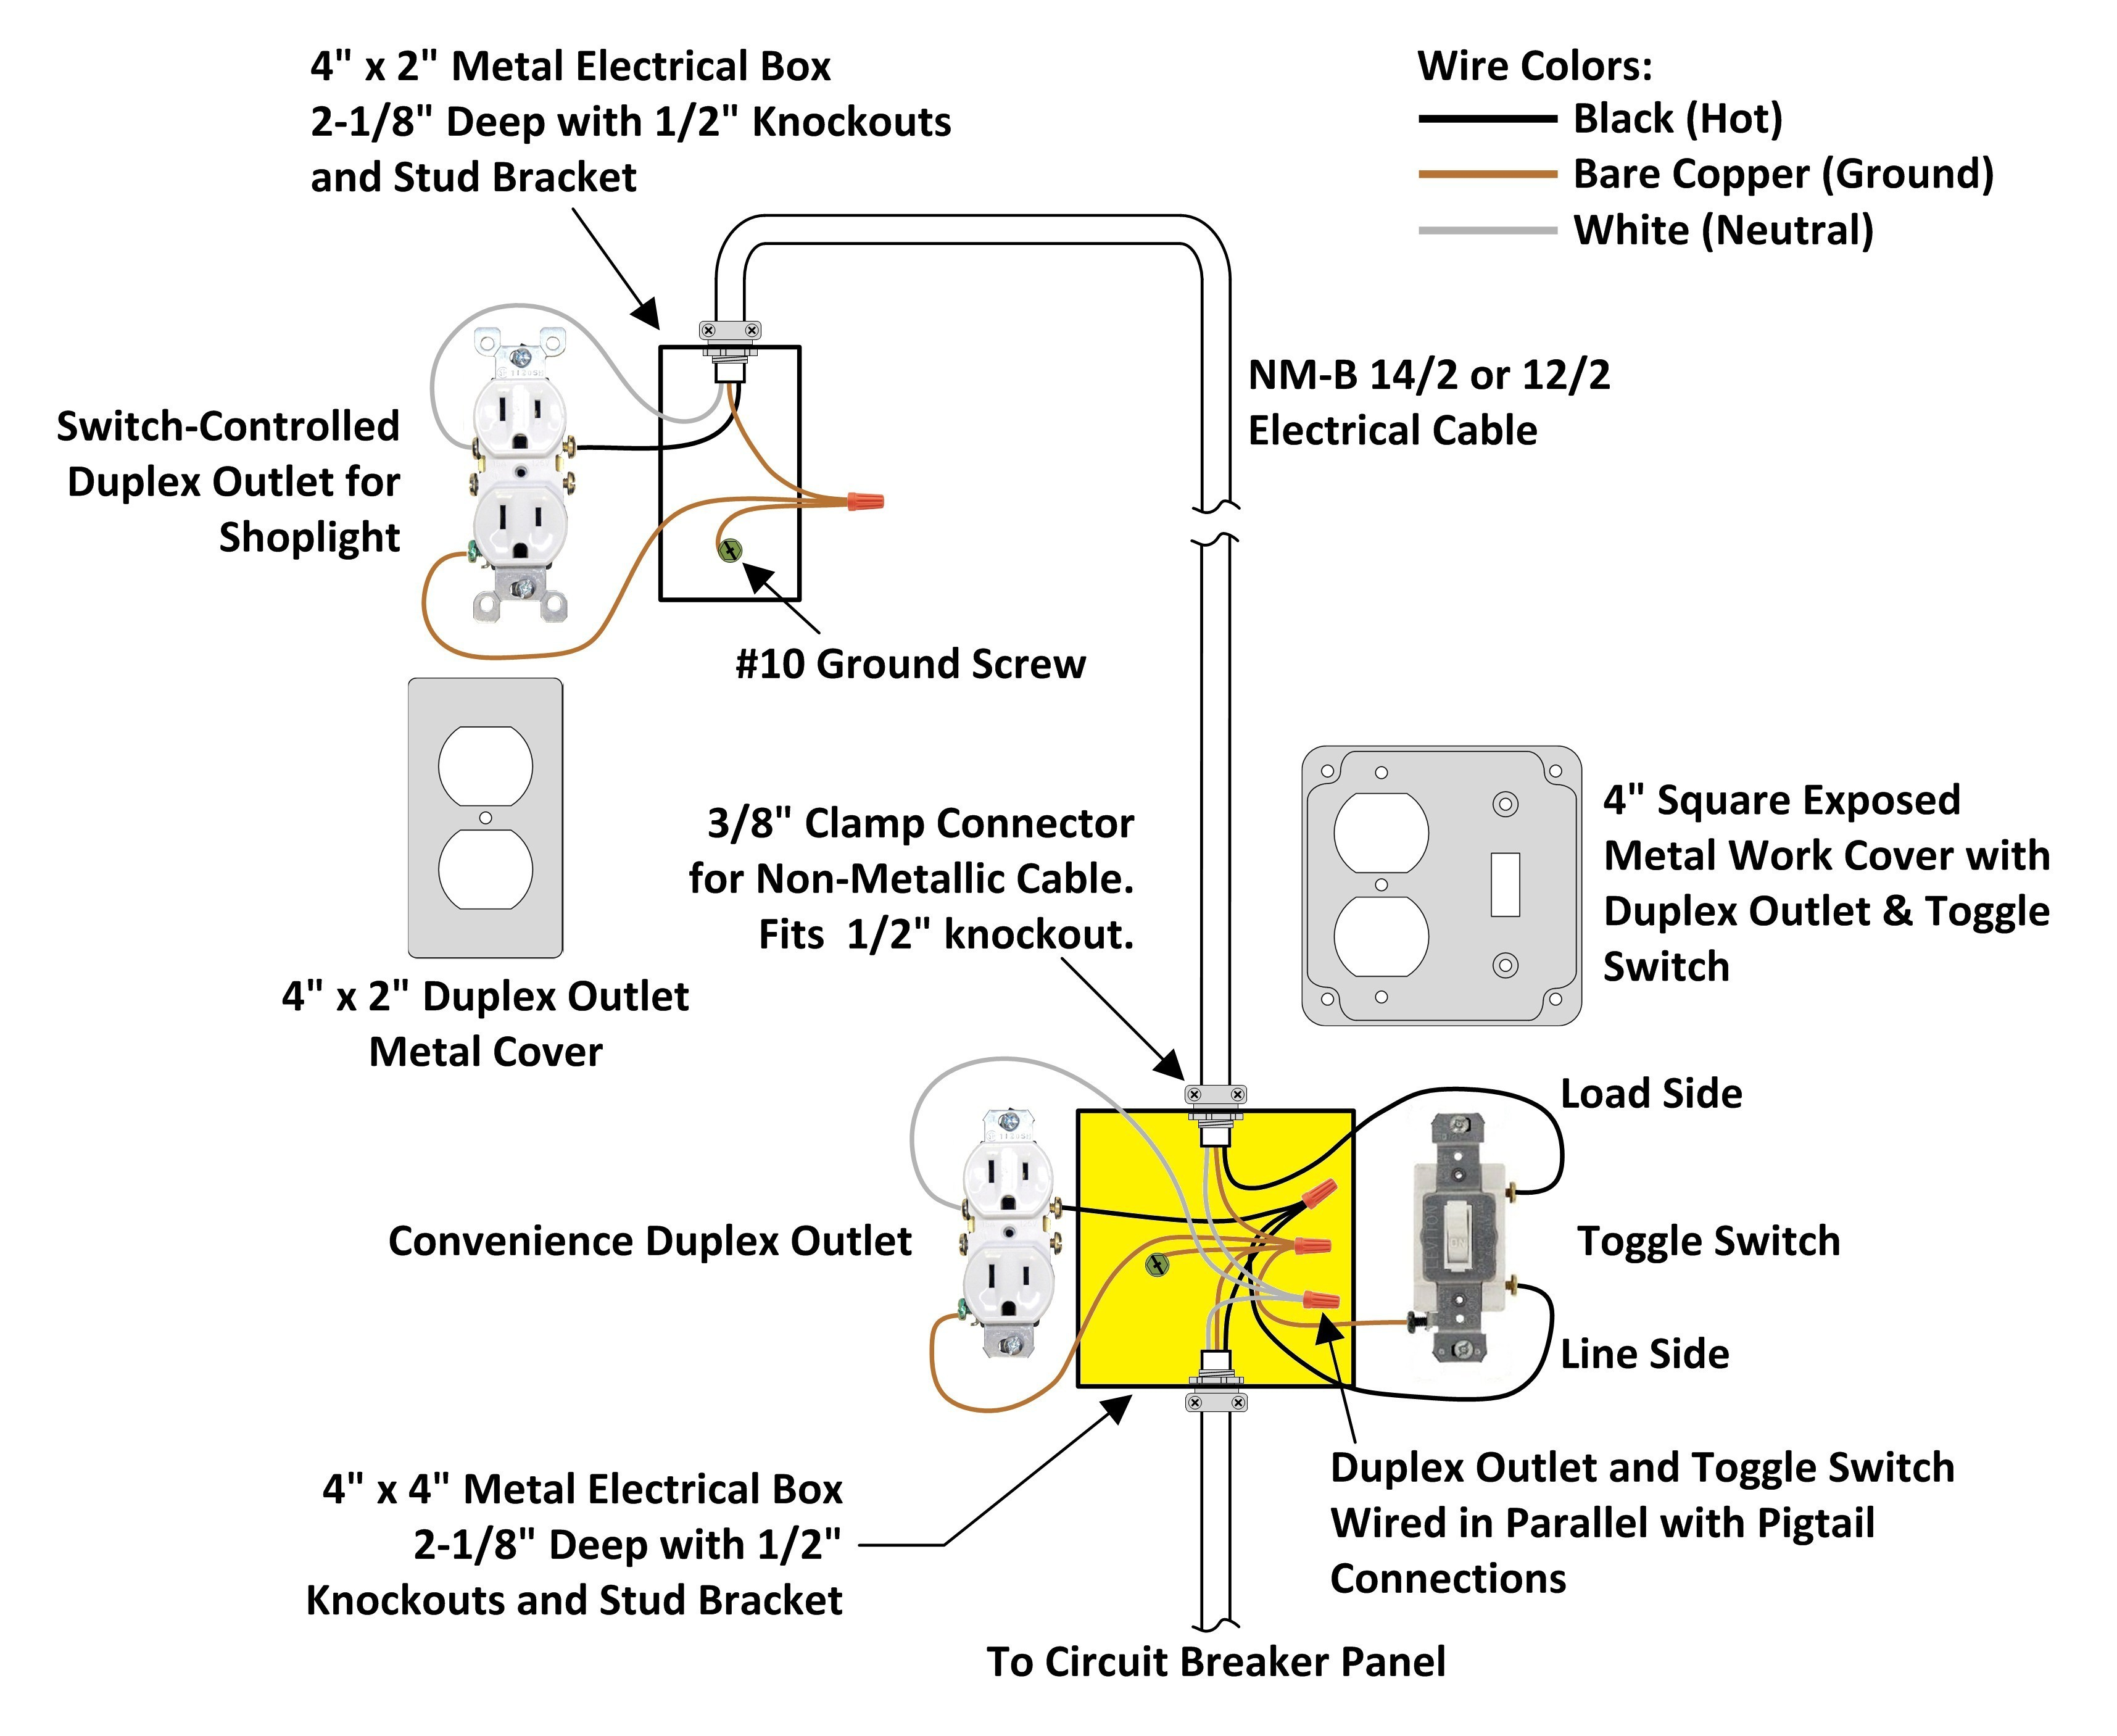 Wiring Diagram Plug Switch Light Copy Wiring Diagram for Plug and Switch Archives Elisaymk Fresh